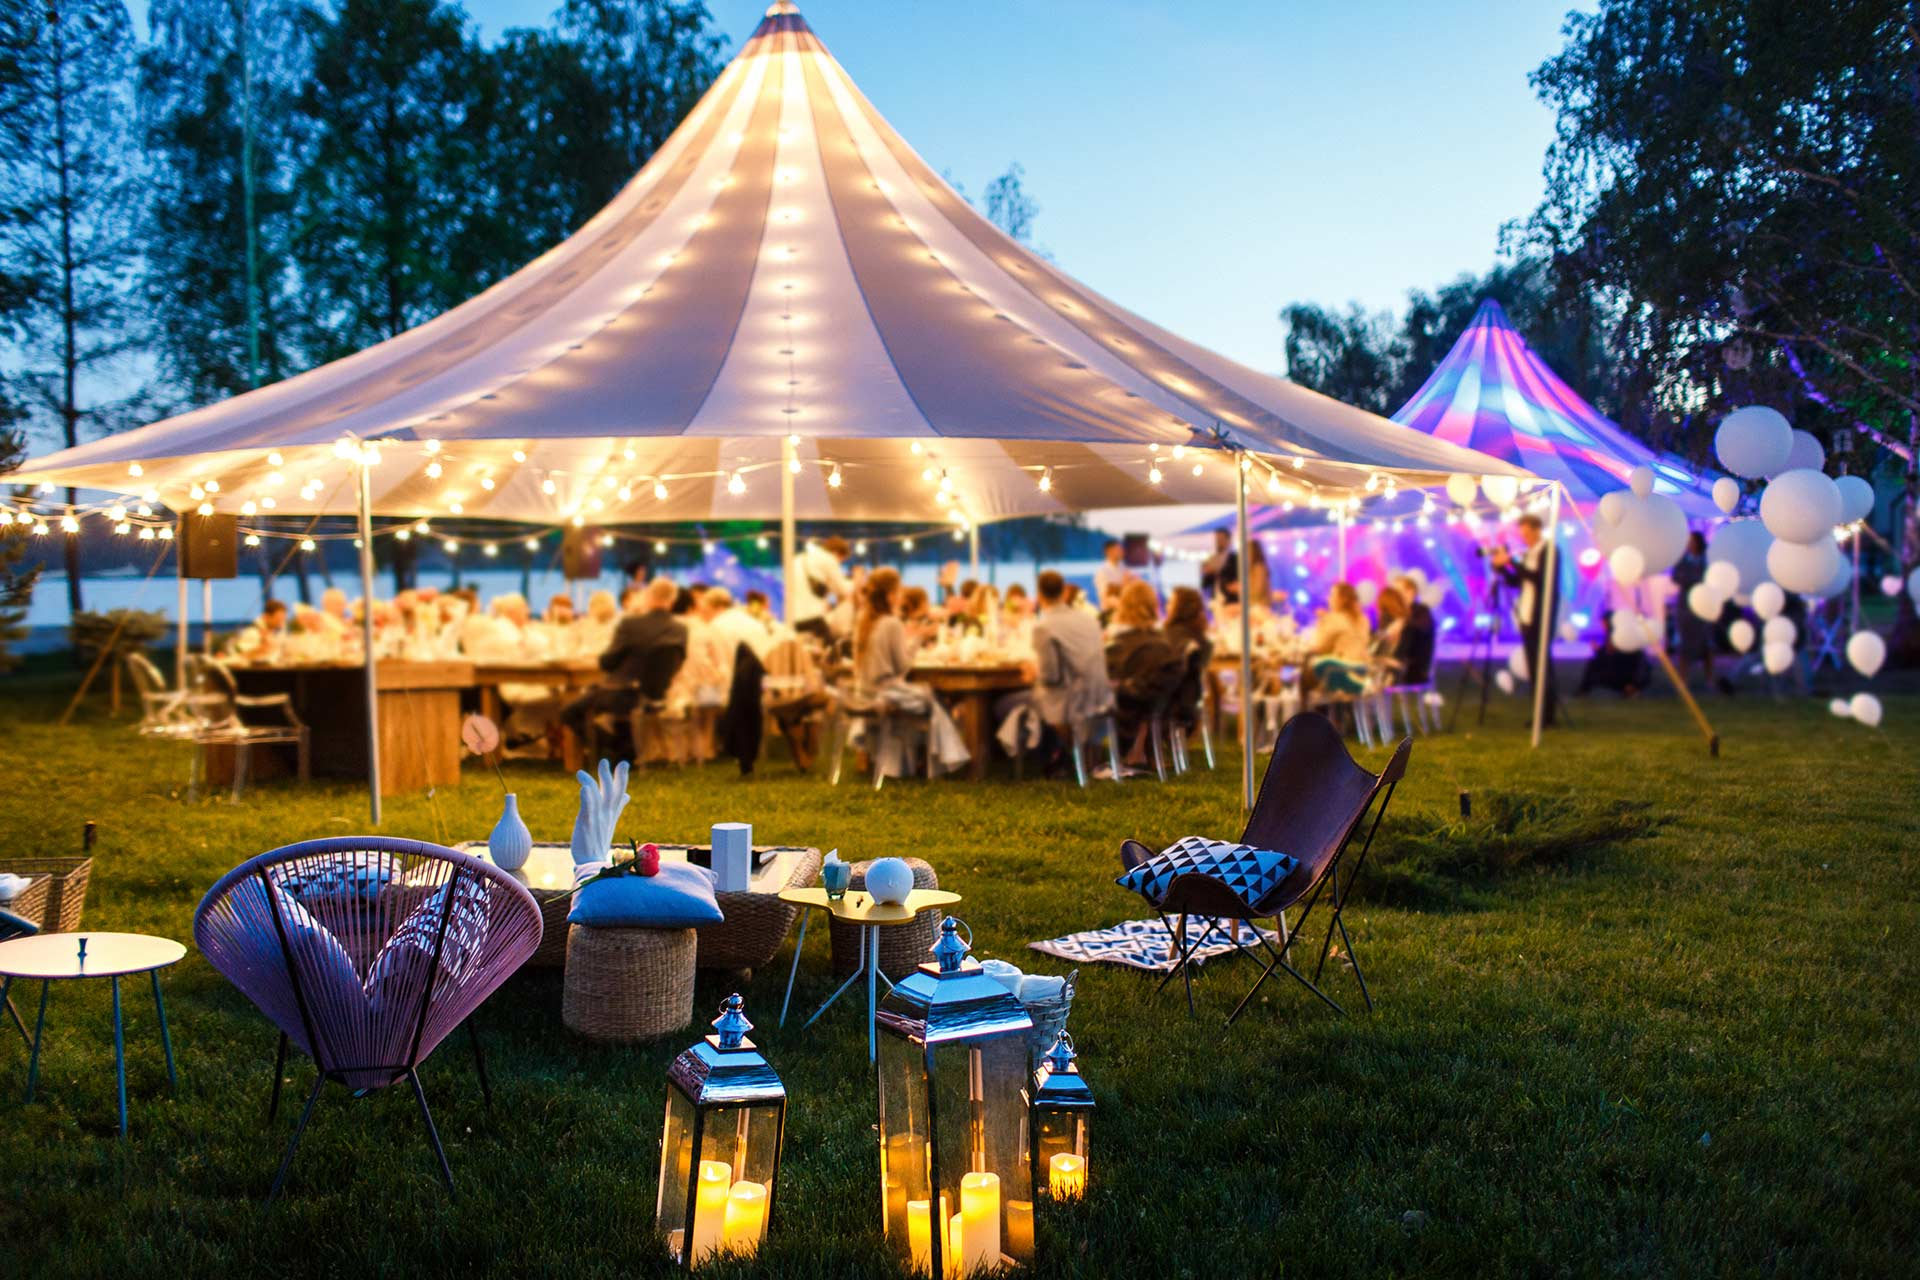 an outdoor party with lighted tents